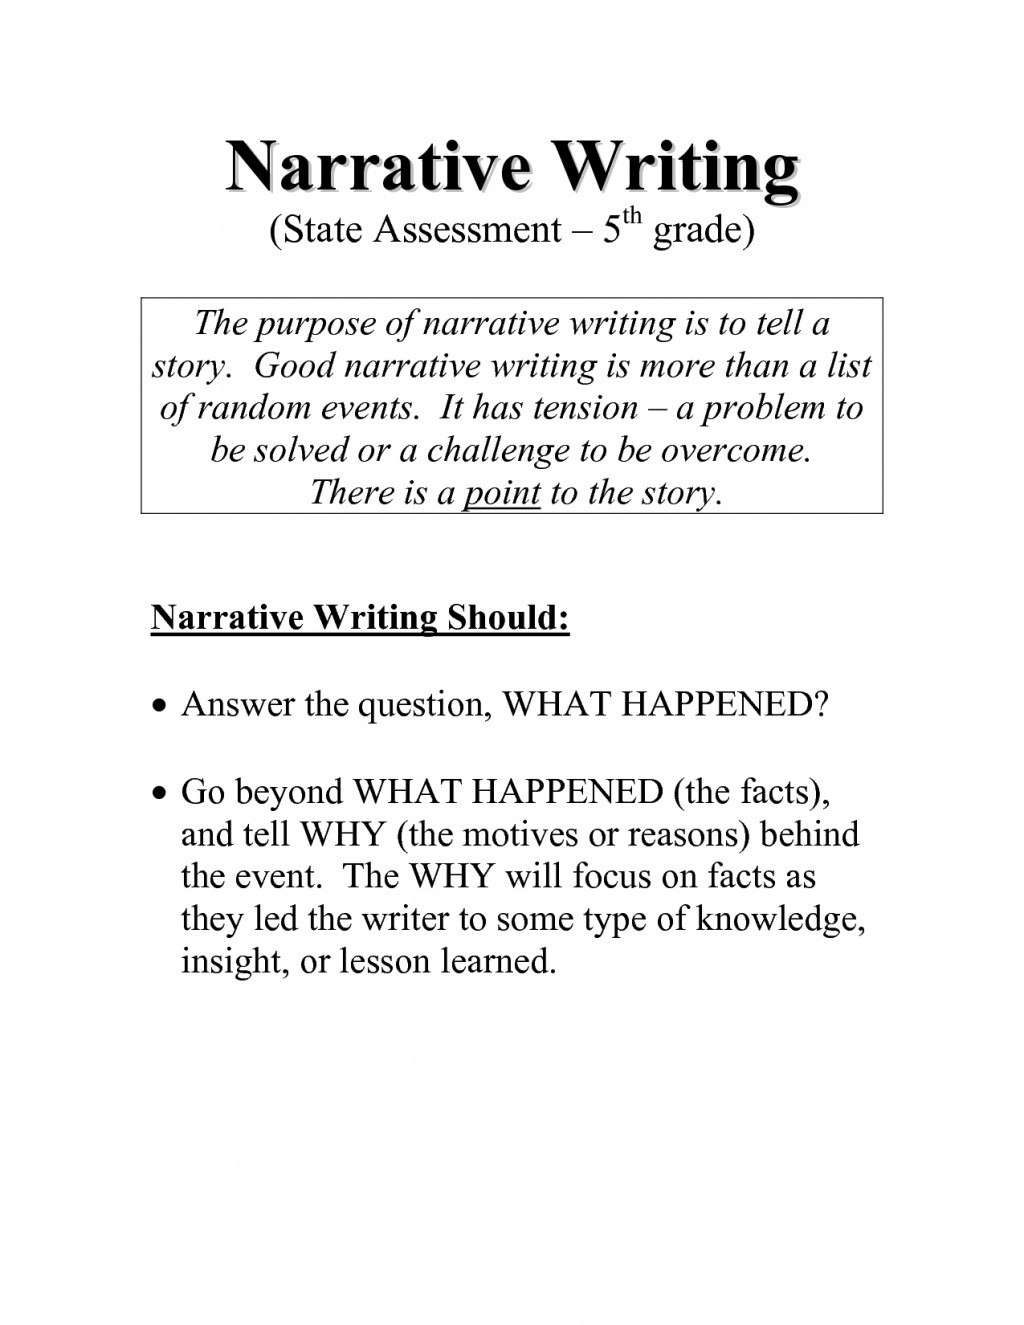 001 Narrative Essay Prompts Example Fascinating Writing 5th Grade Common Core 4th Large